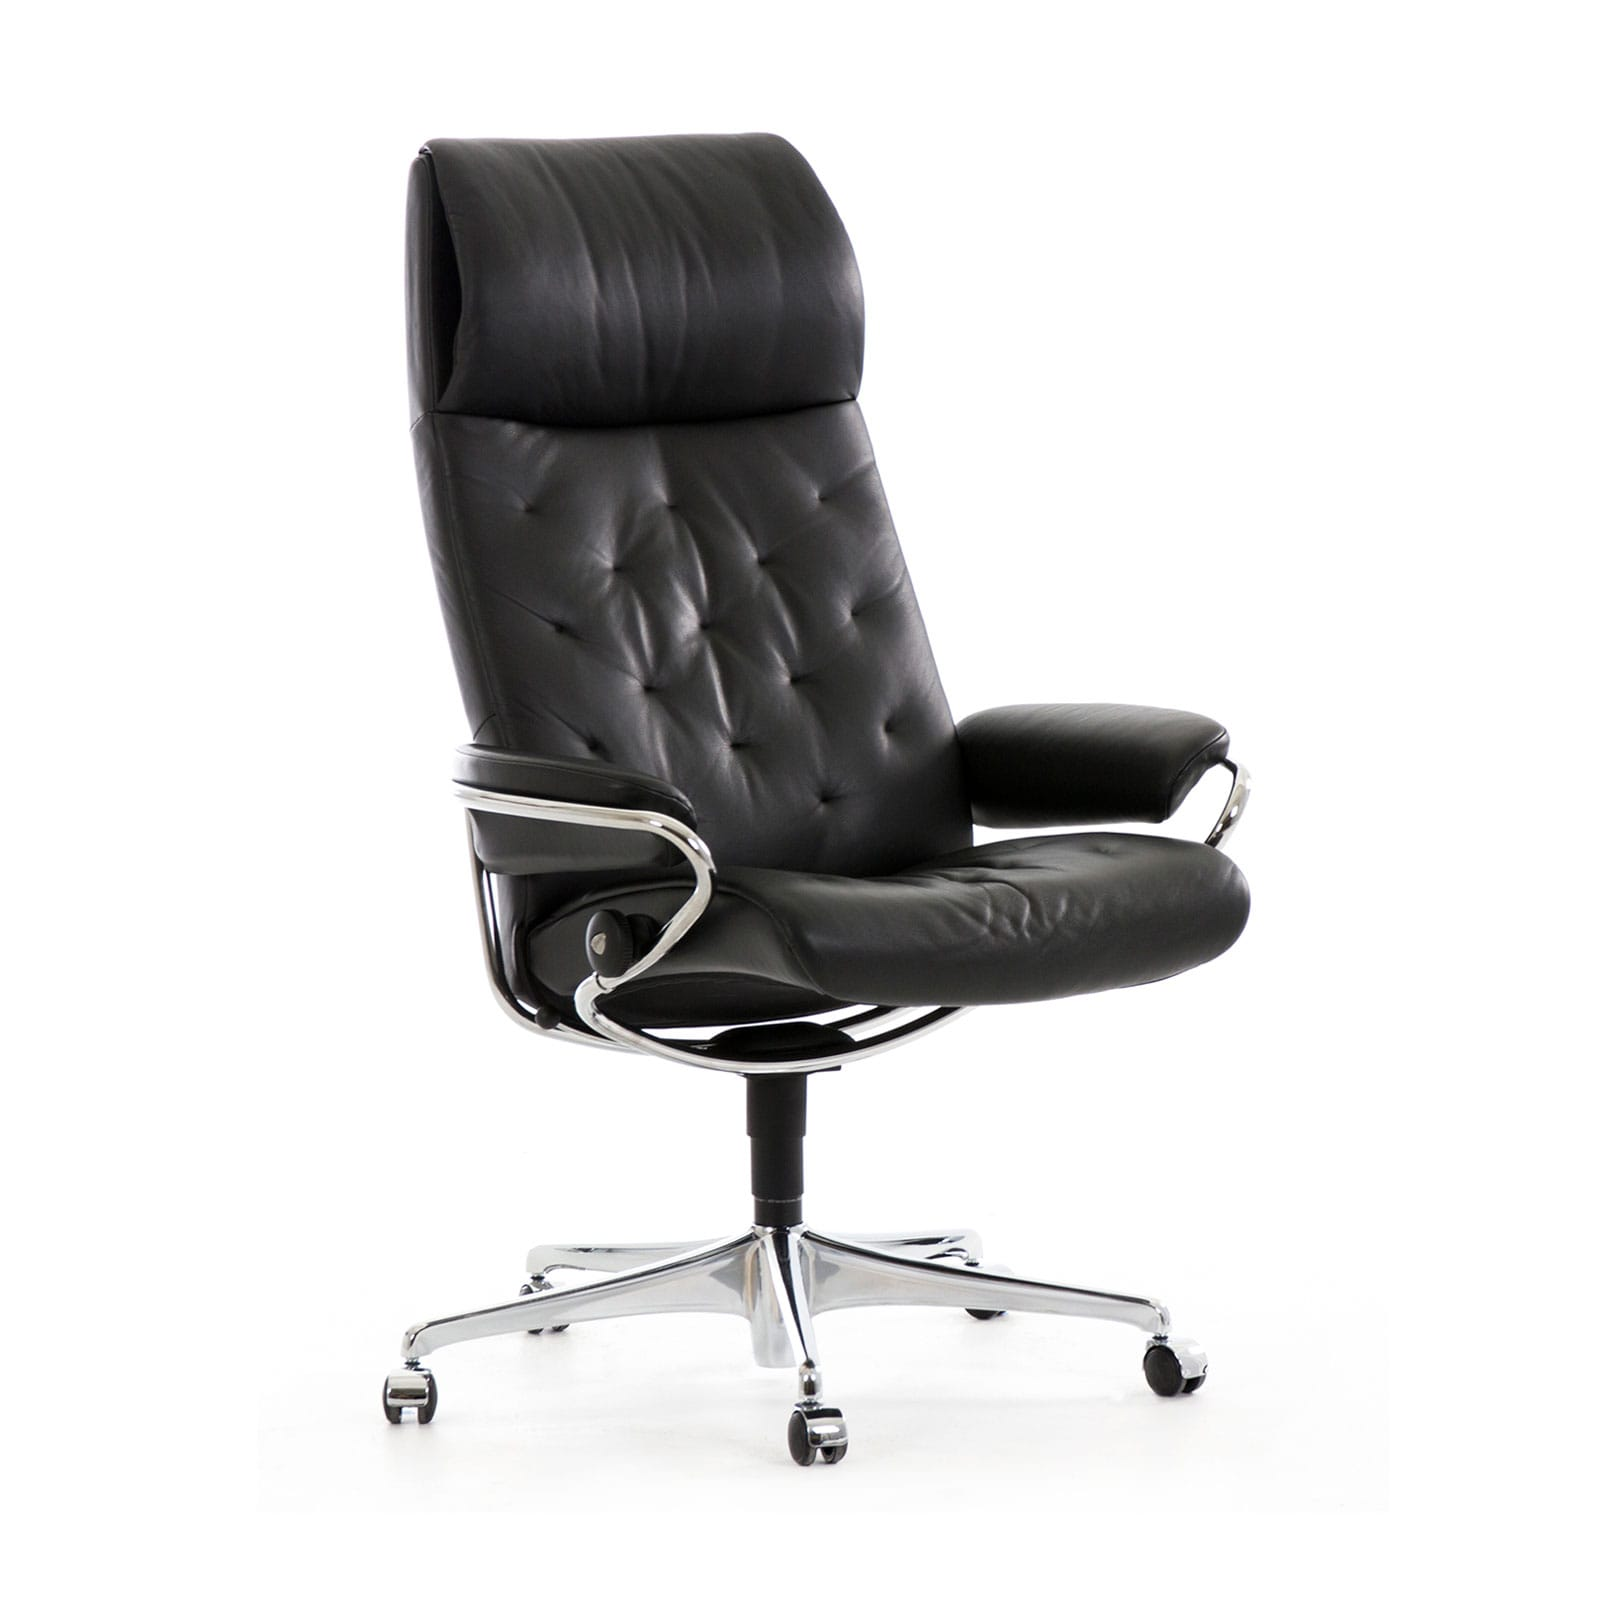 Stressless Metro Home Office High Back Paloma Schwarz Gestell Chrom